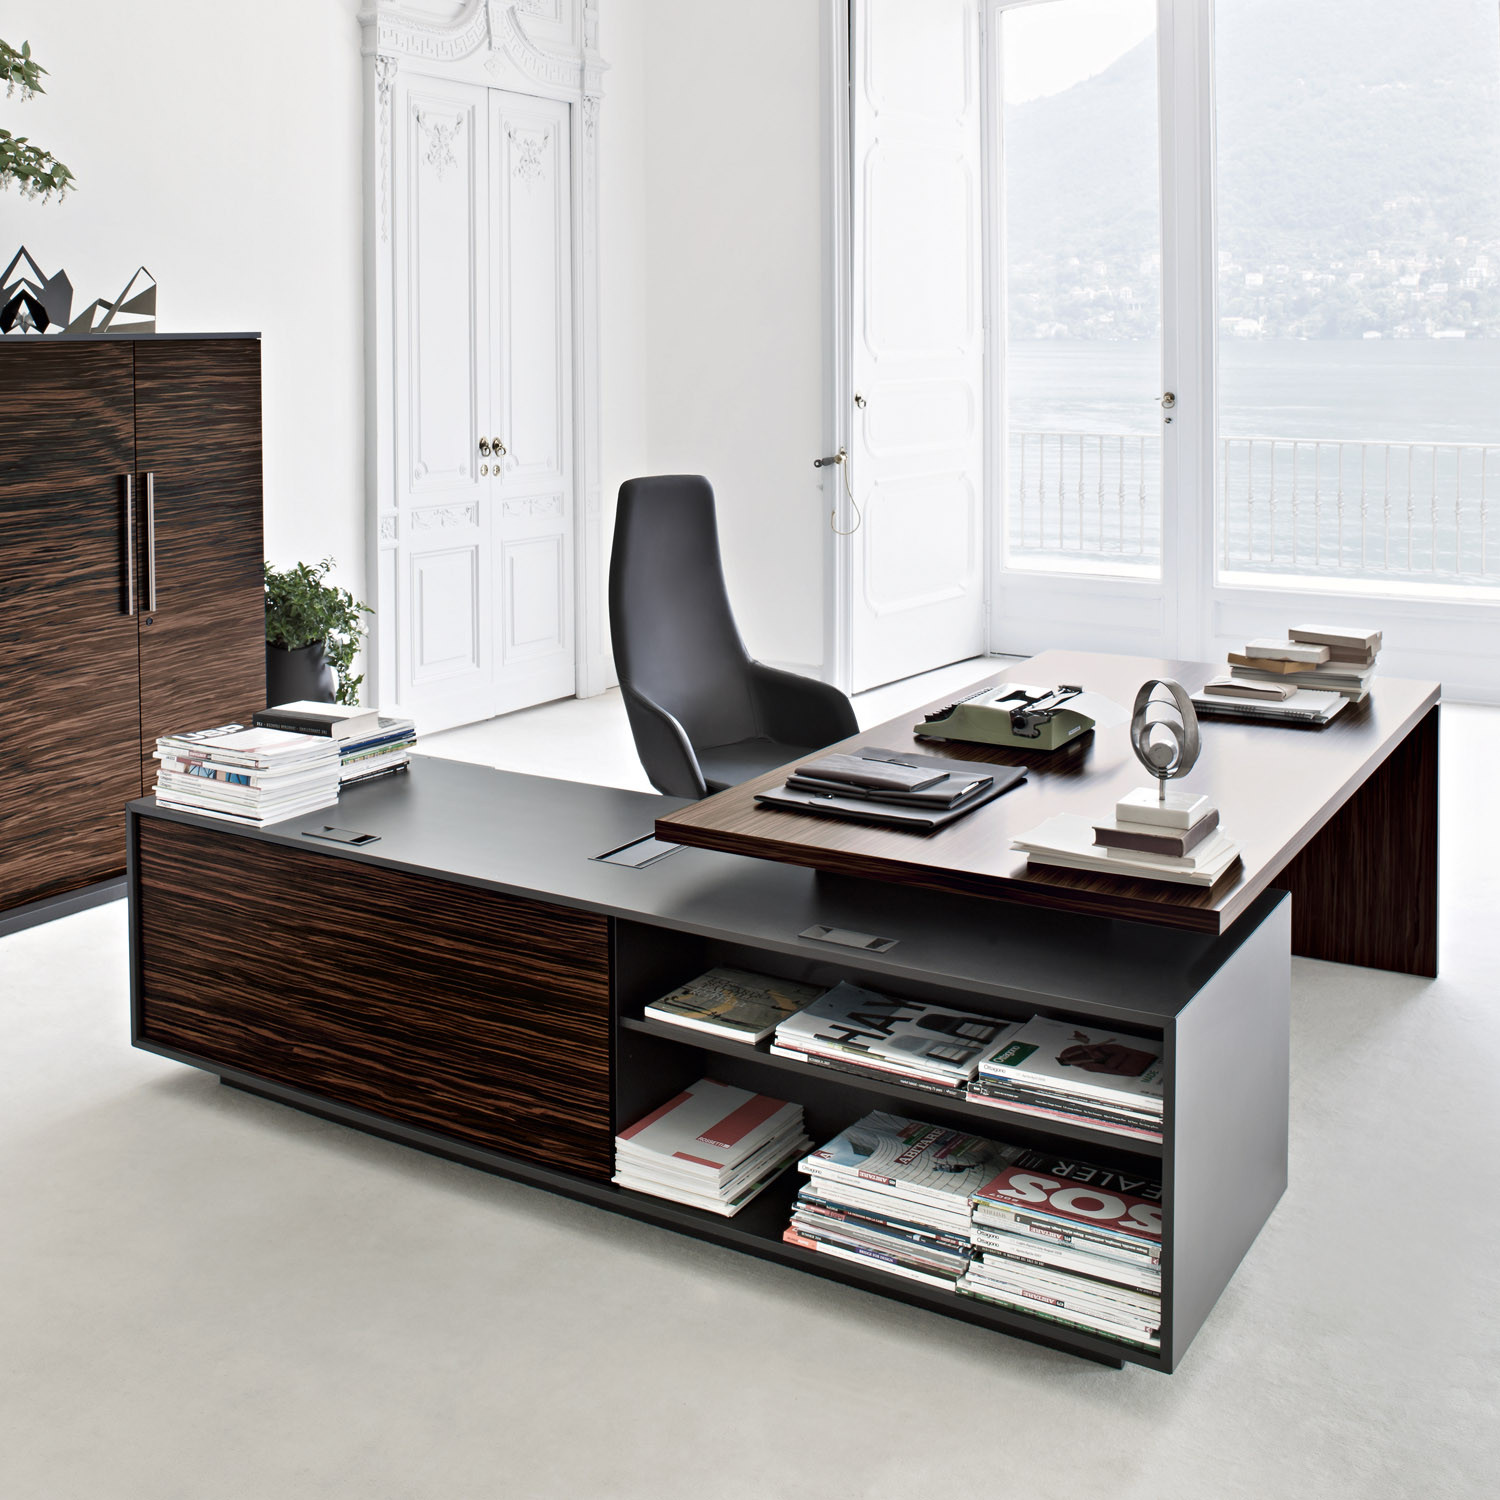 Sinetica Report Executive Desk with Shelving